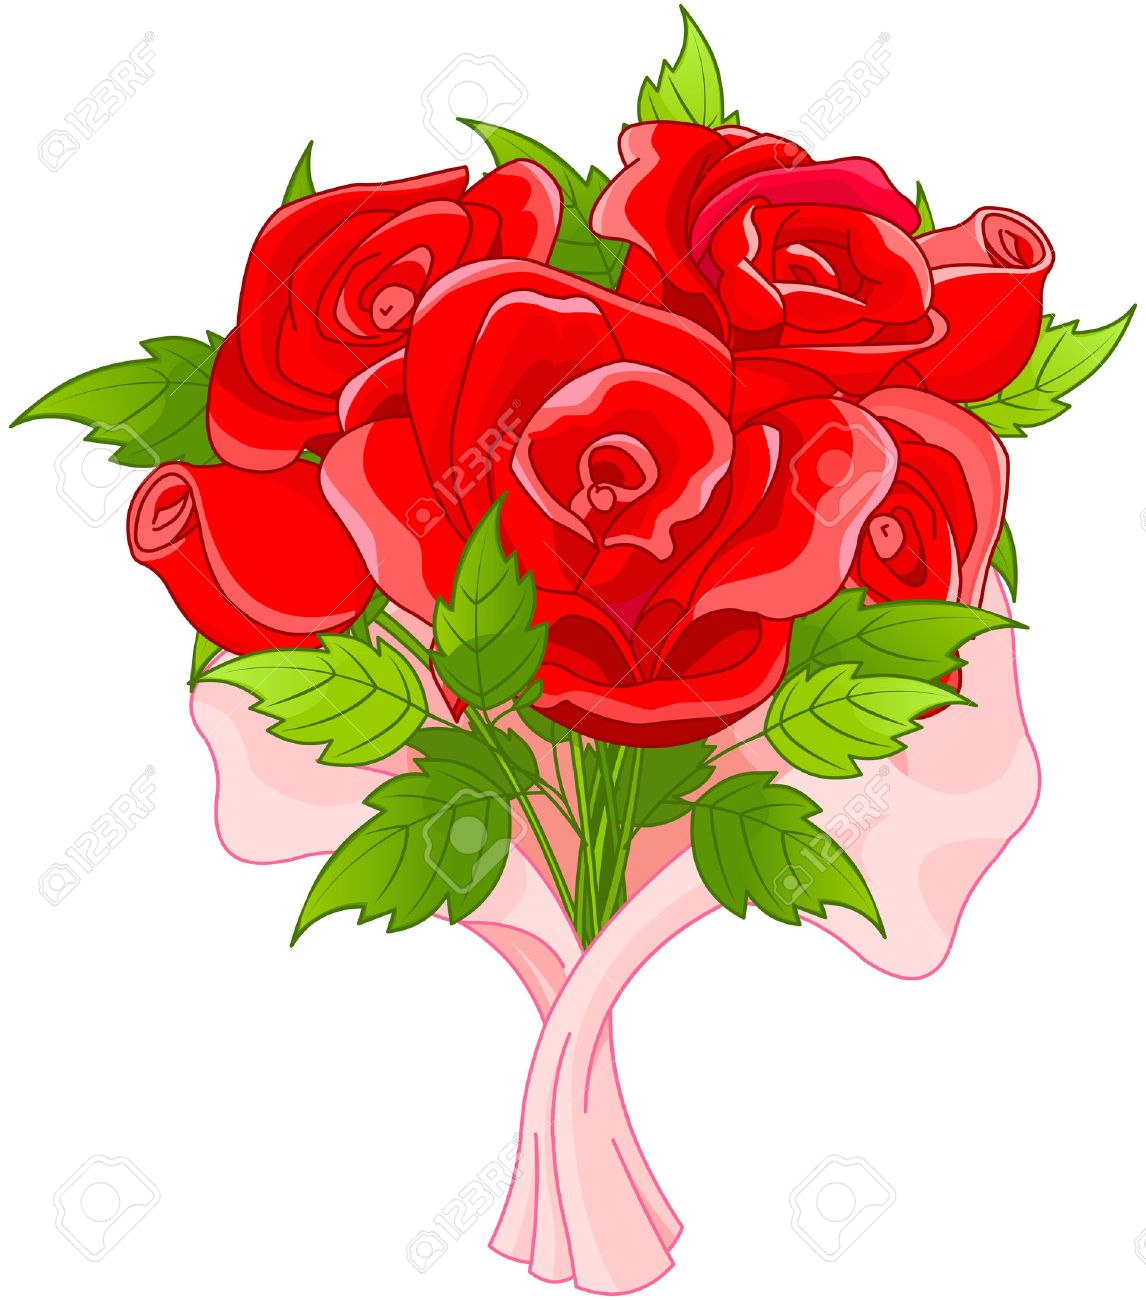 48304 bunch of flowers stock illustrations cliparts and royalty illustration of bouquet of roses izmirmasajfo